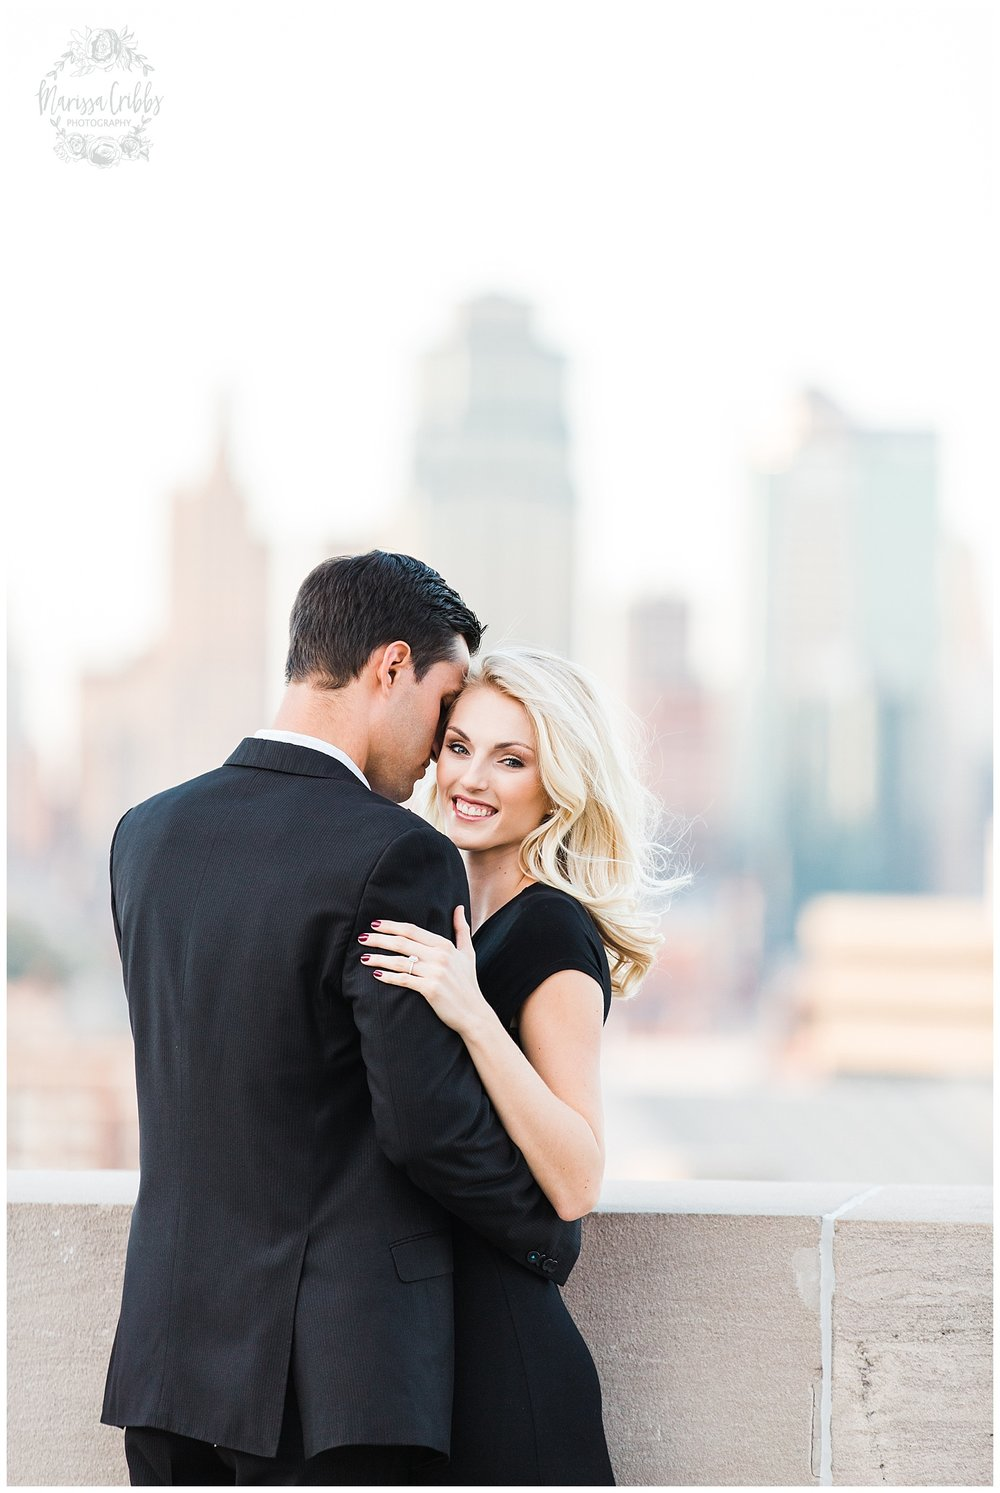 CLOE & GABE LIBERTY MEMORIAL ENGAGEMENT | MARISSA CRIBBS PHOTOGRAPHY | LOOSE PARK ENGAGEMENT_3466.jpg